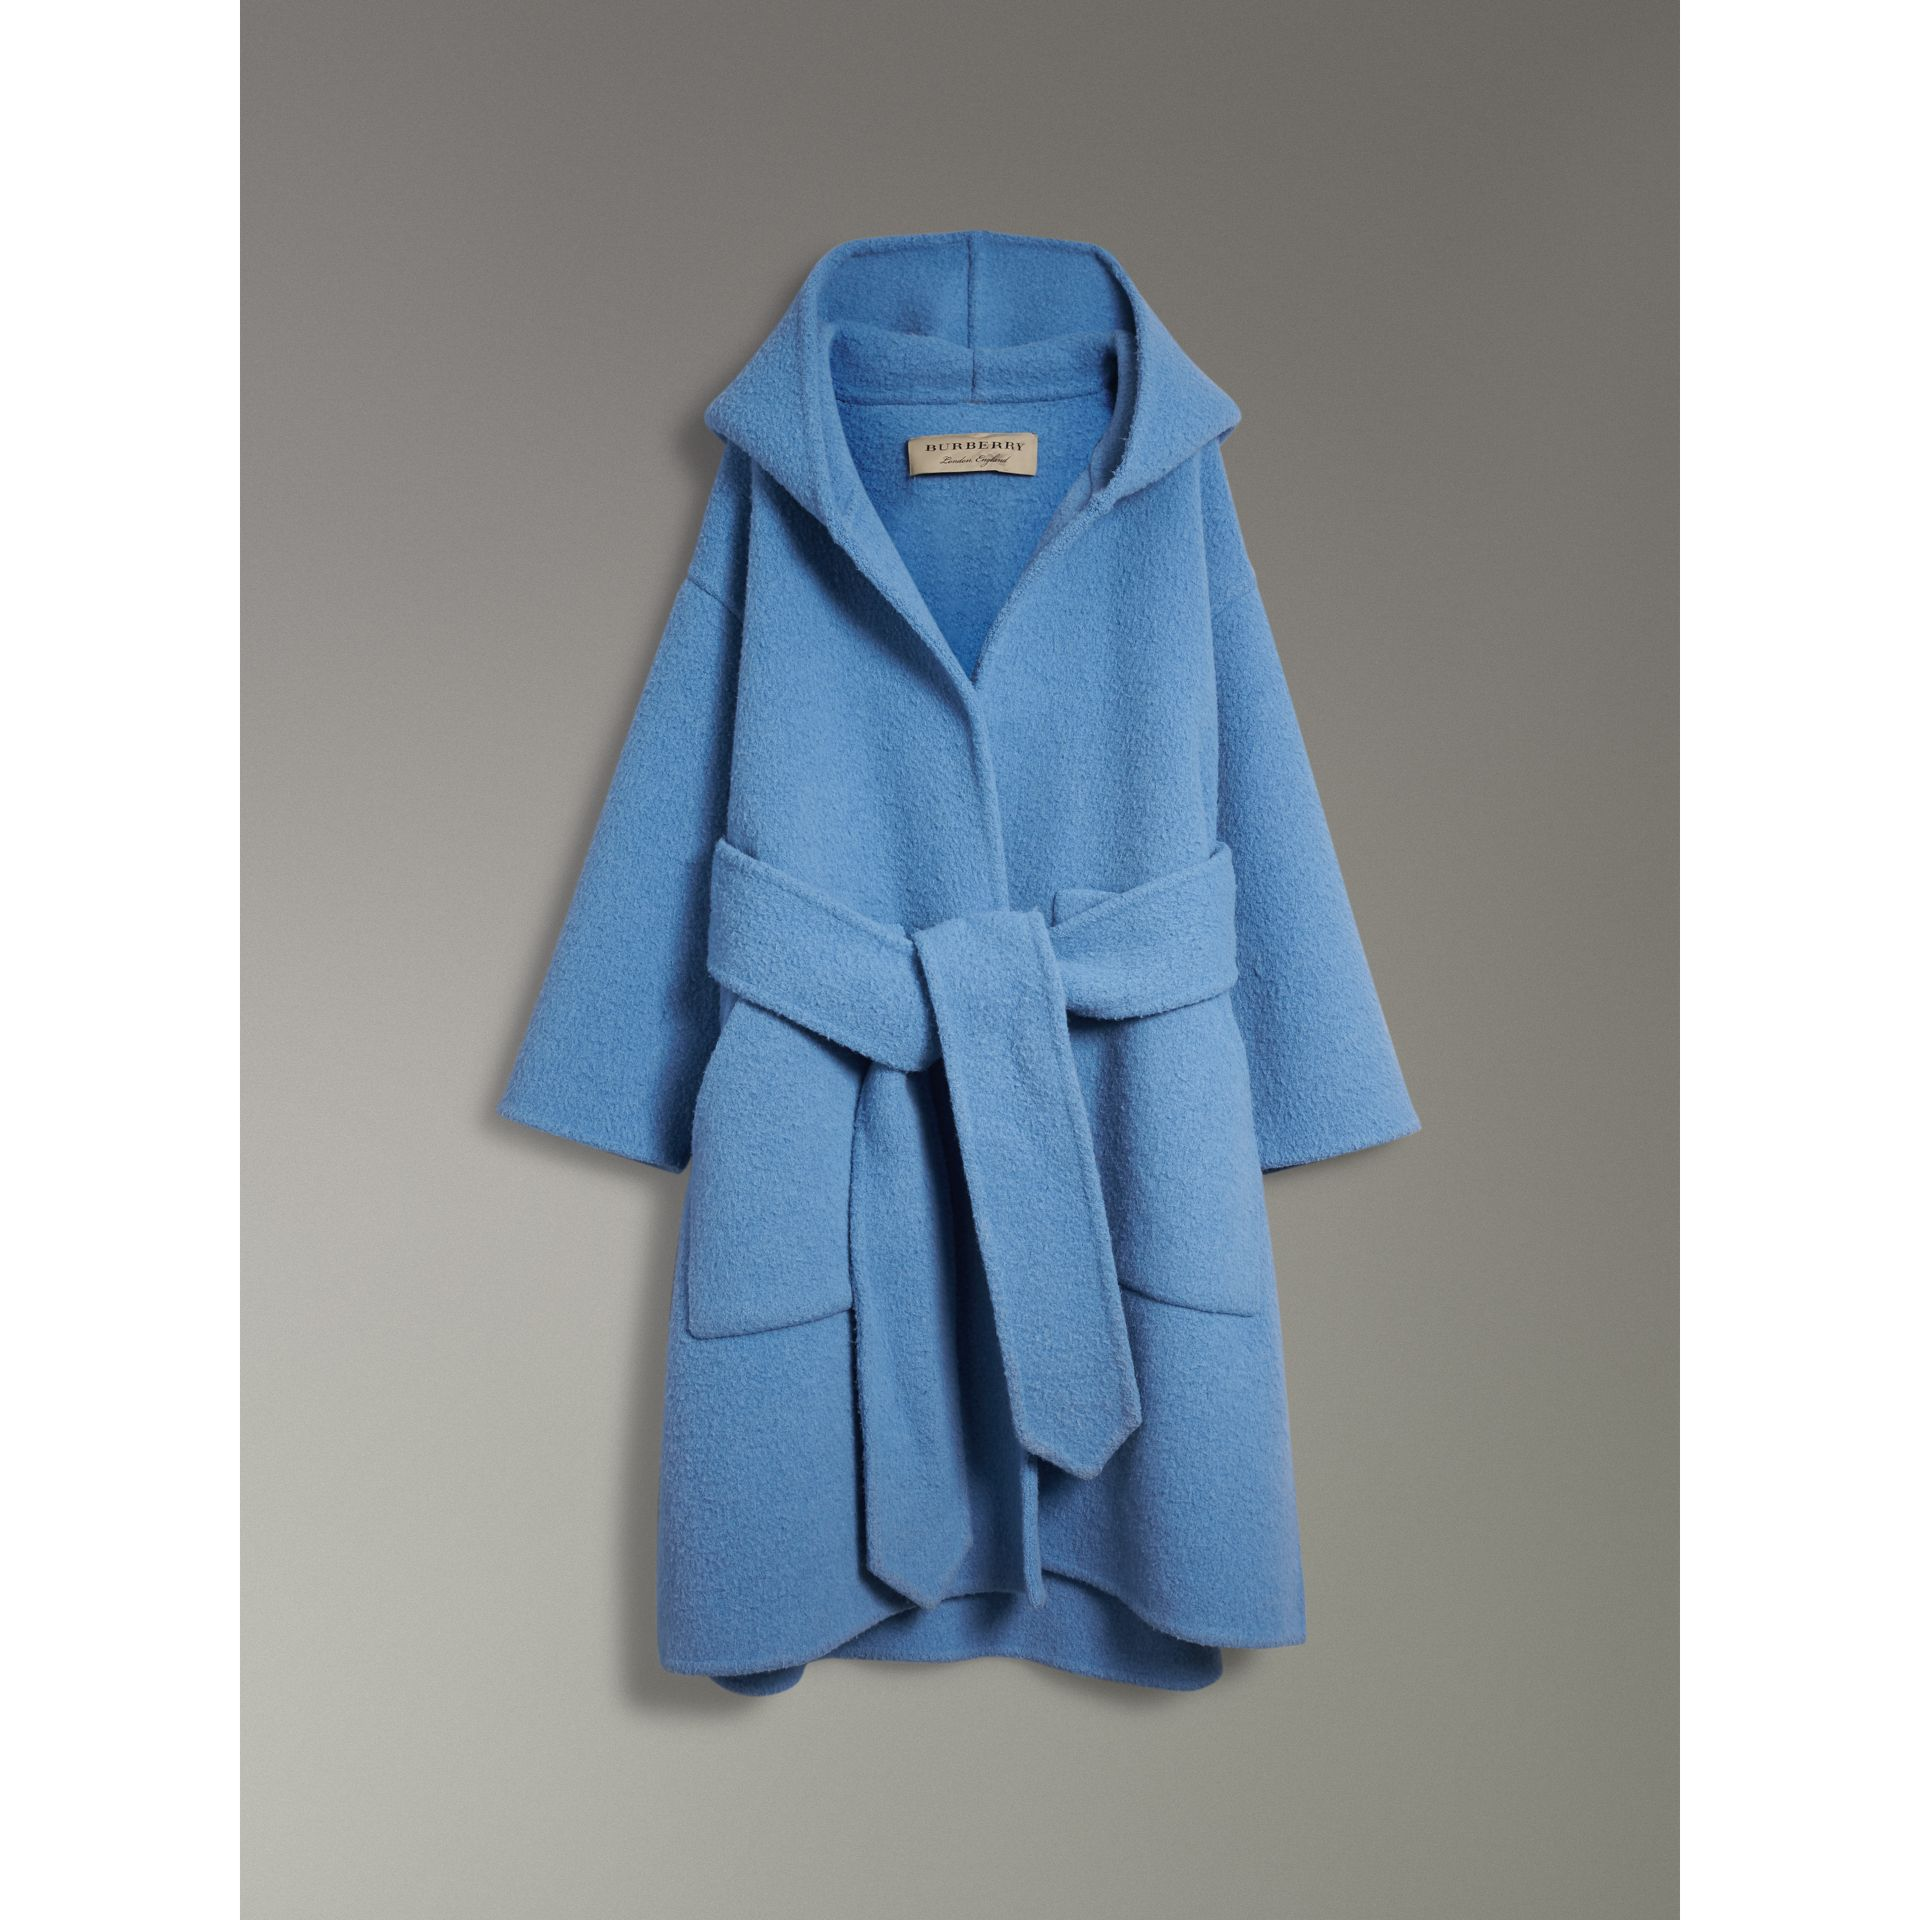 Alpaca Wool Blend Dressing Gown Coat in Hydrangea Blue - Women | Burberry Canada - gallery image 3